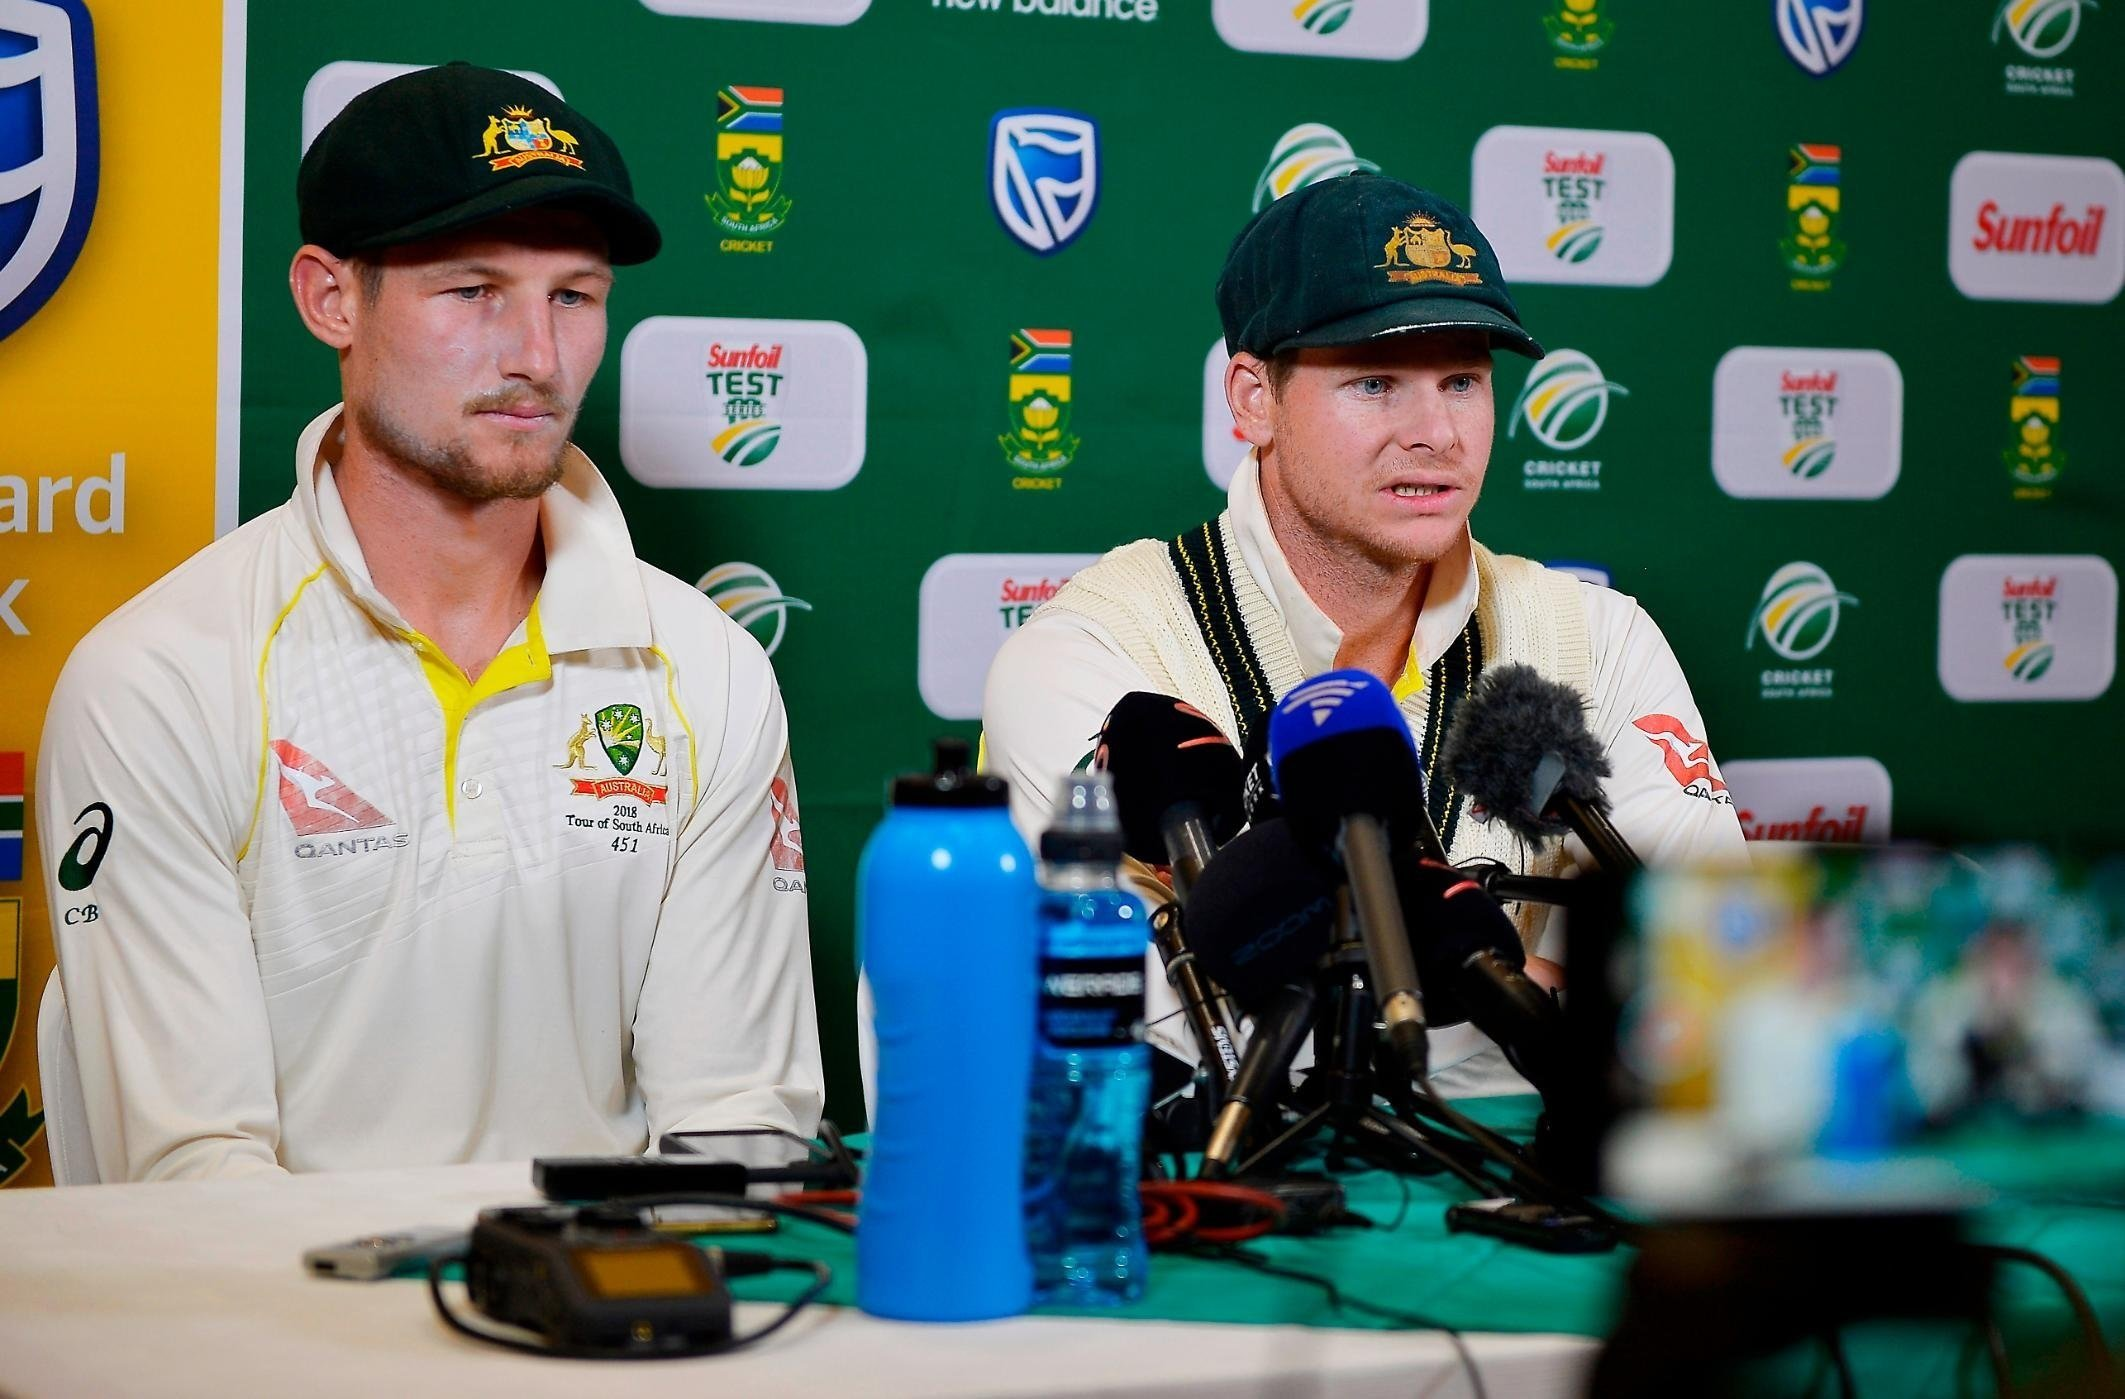 Bancroft charged over ball-tampering incident